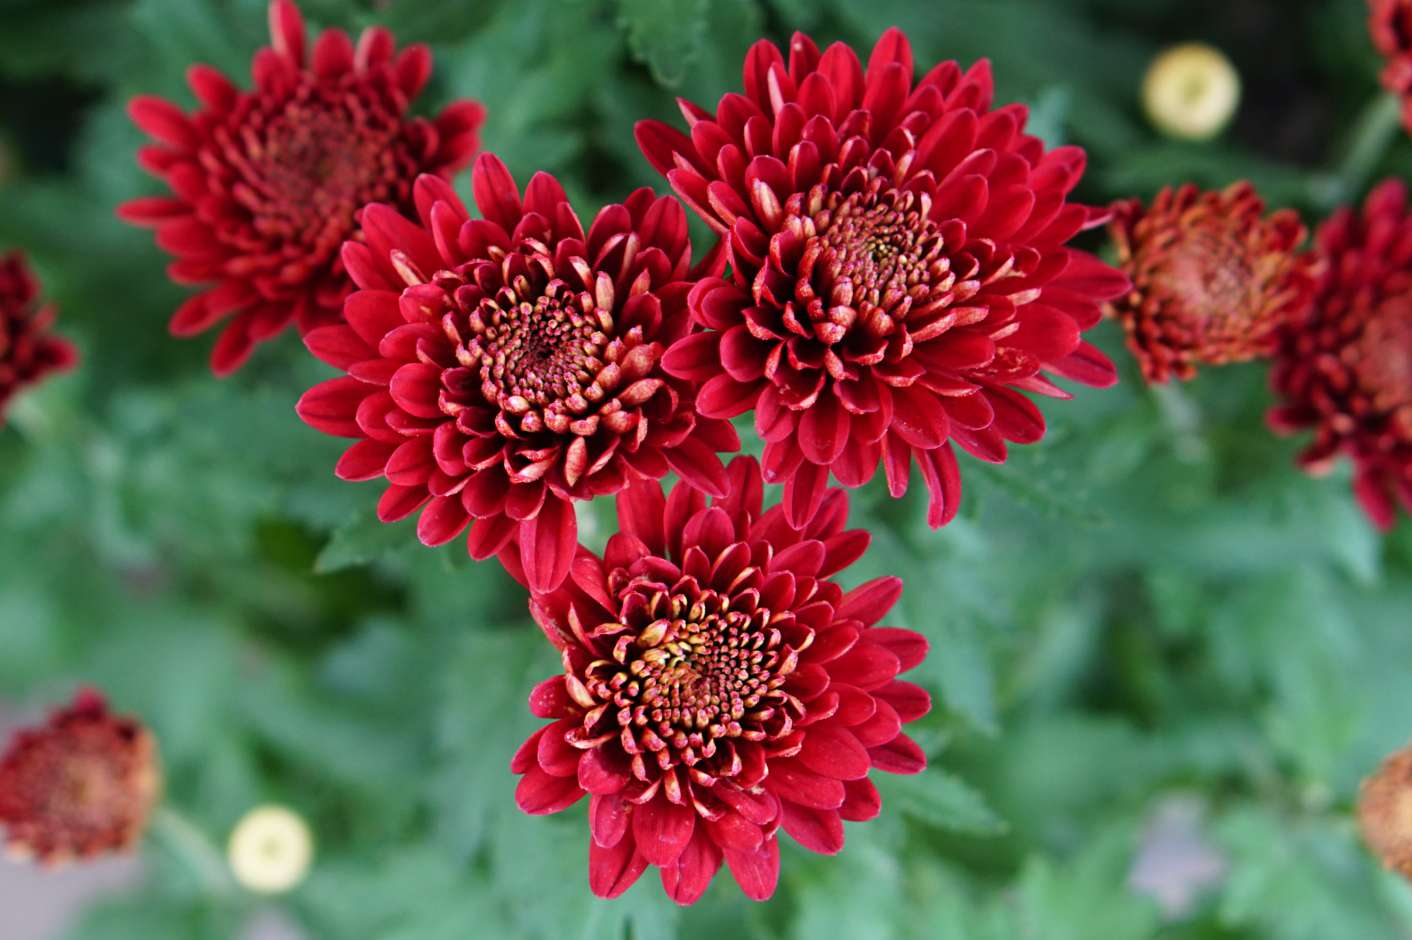 Hardy mum plant with red flowers and leaves closeup